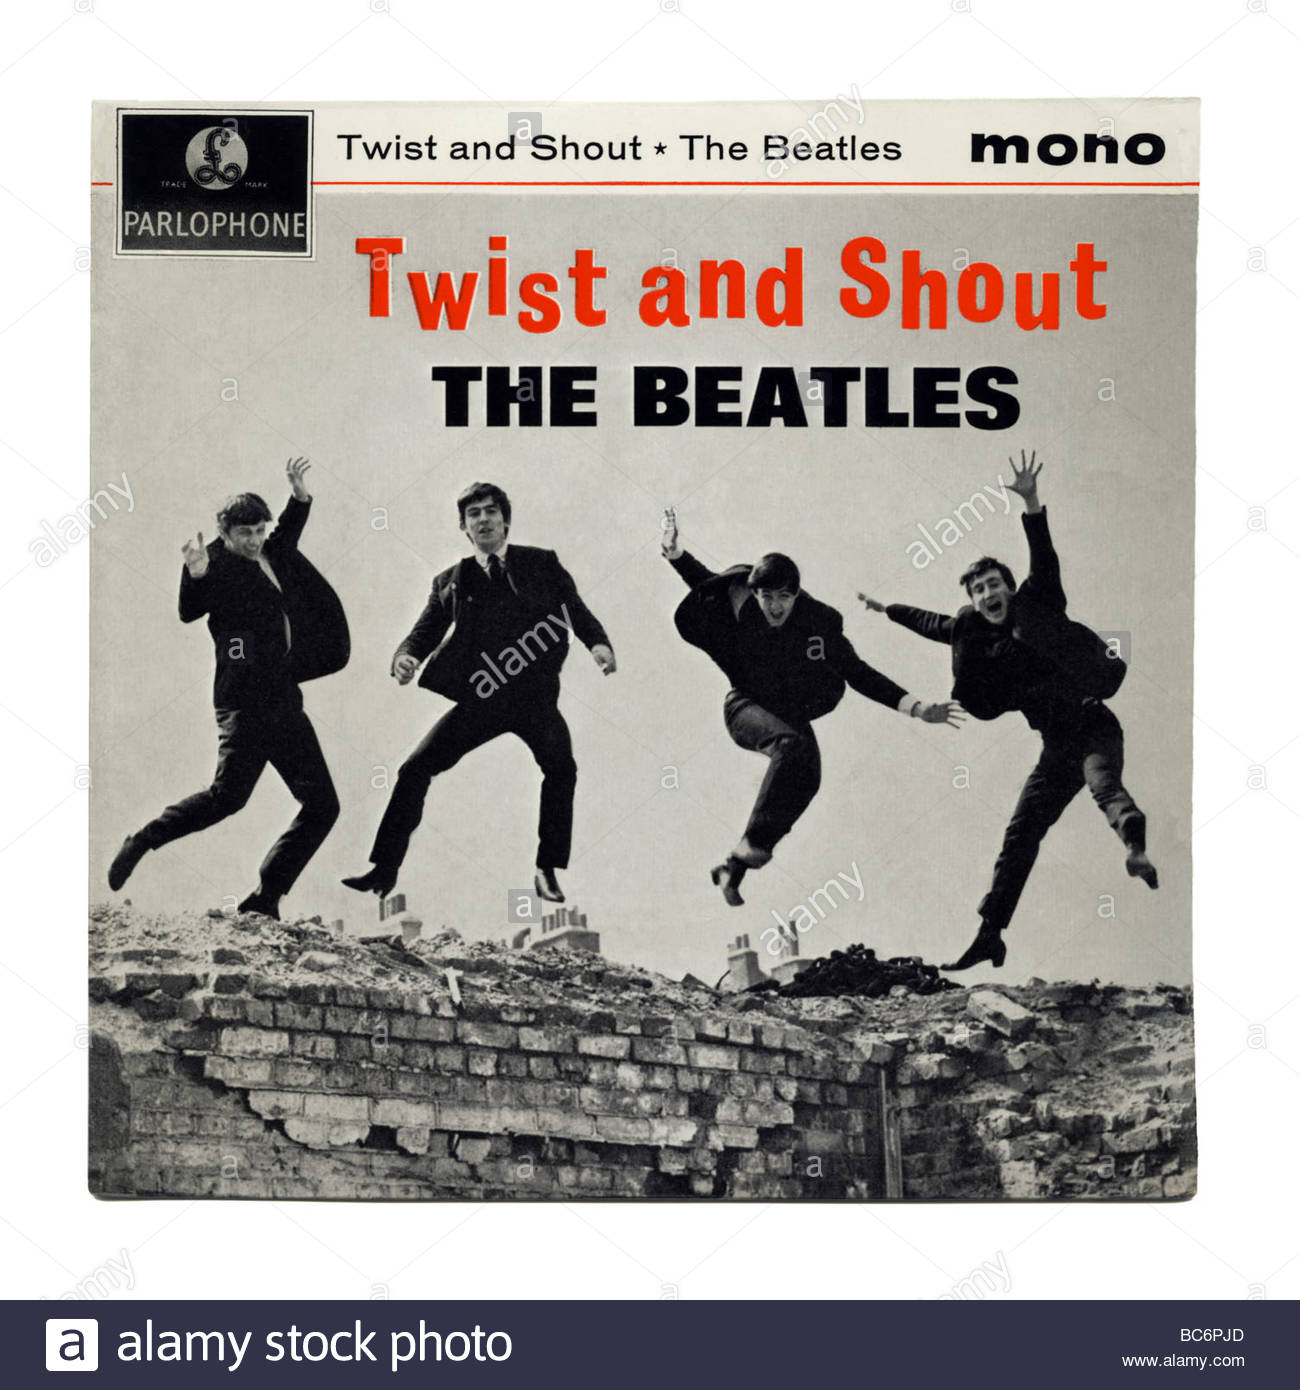 'Twist and shout' de The Beatles, un récord en el primer EP publicado en 1963 Imagen De Stock